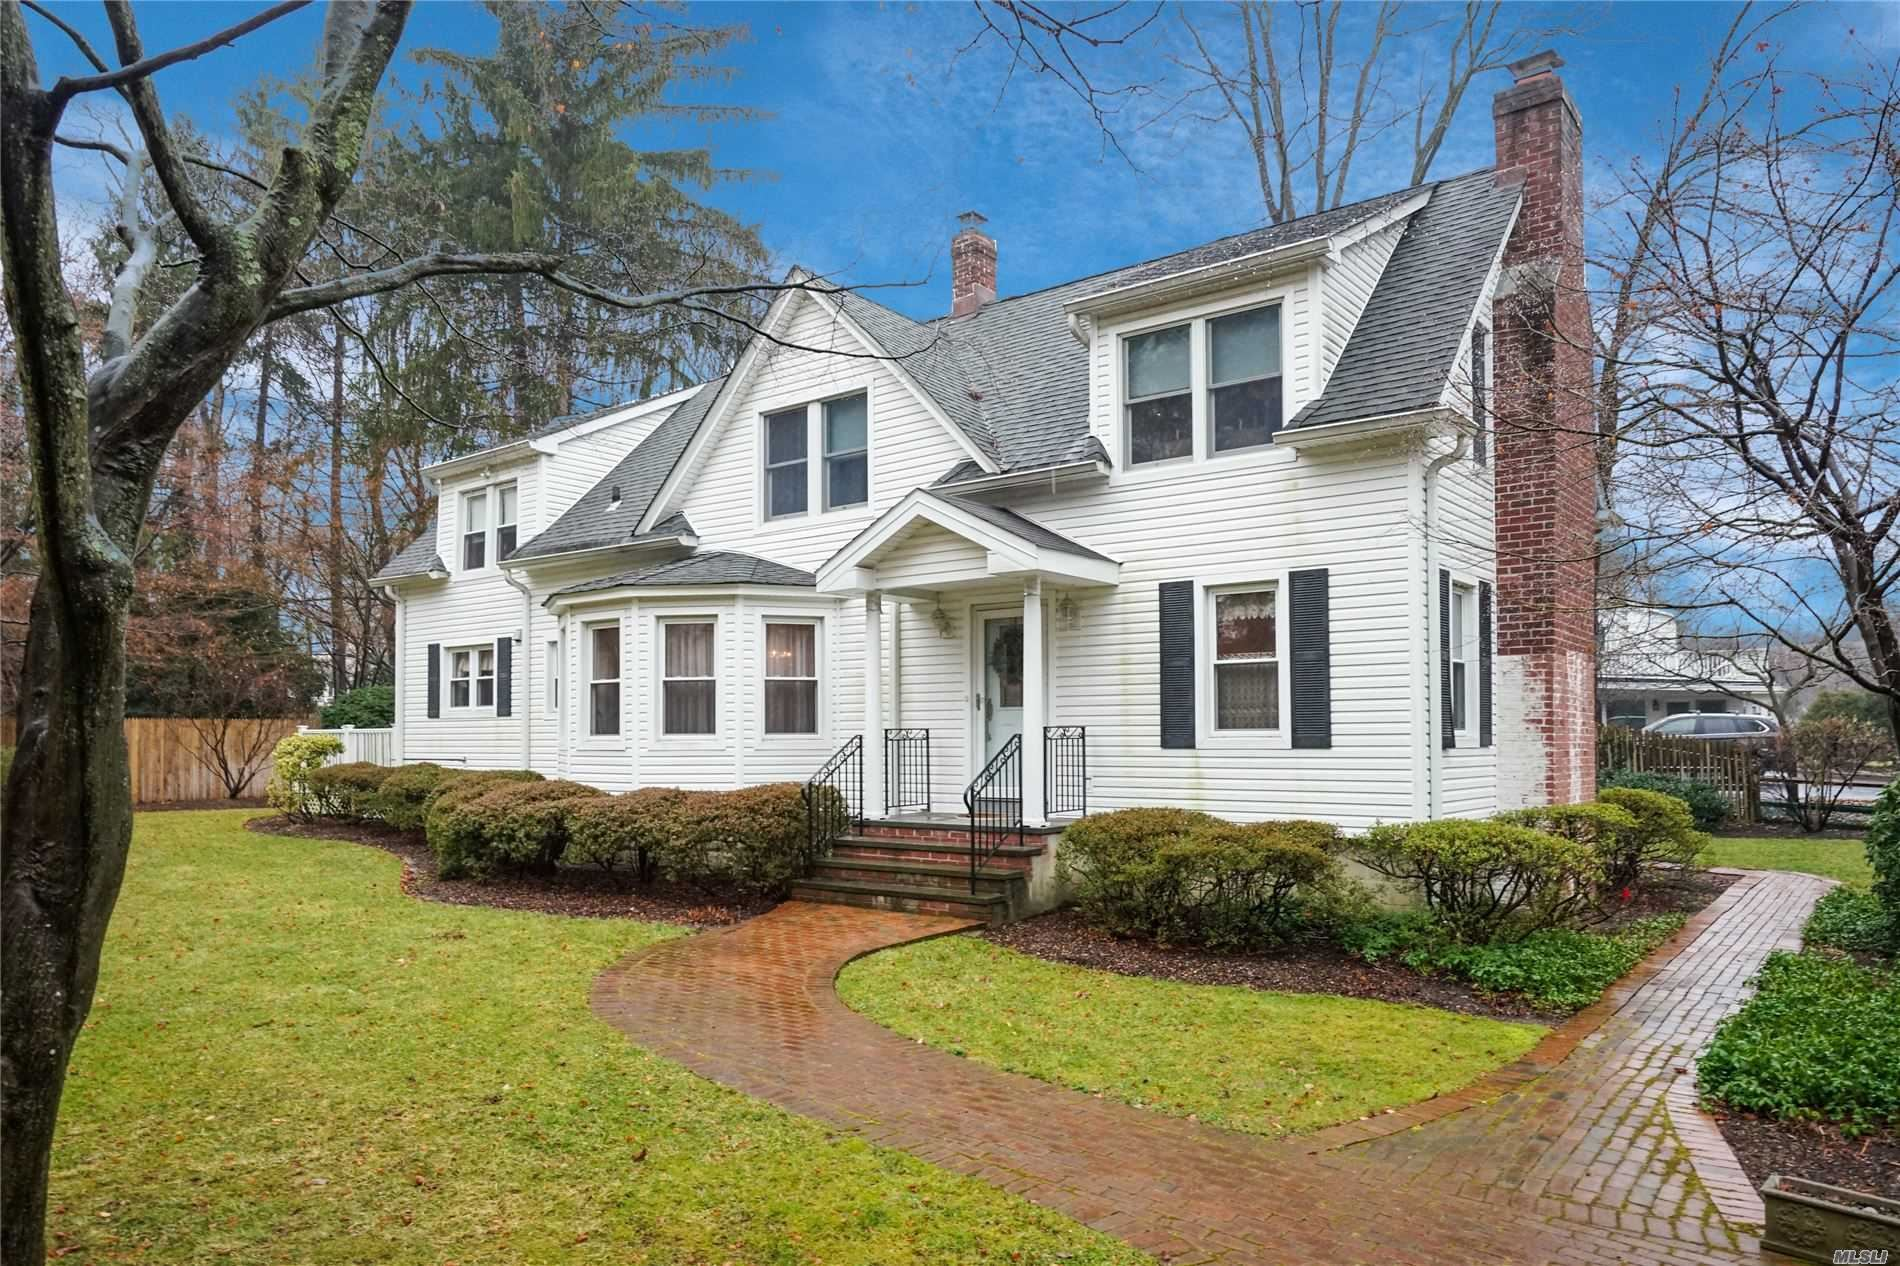 31 Old Northport Road, Huntington, NY 11743 - MLS#: 3198628